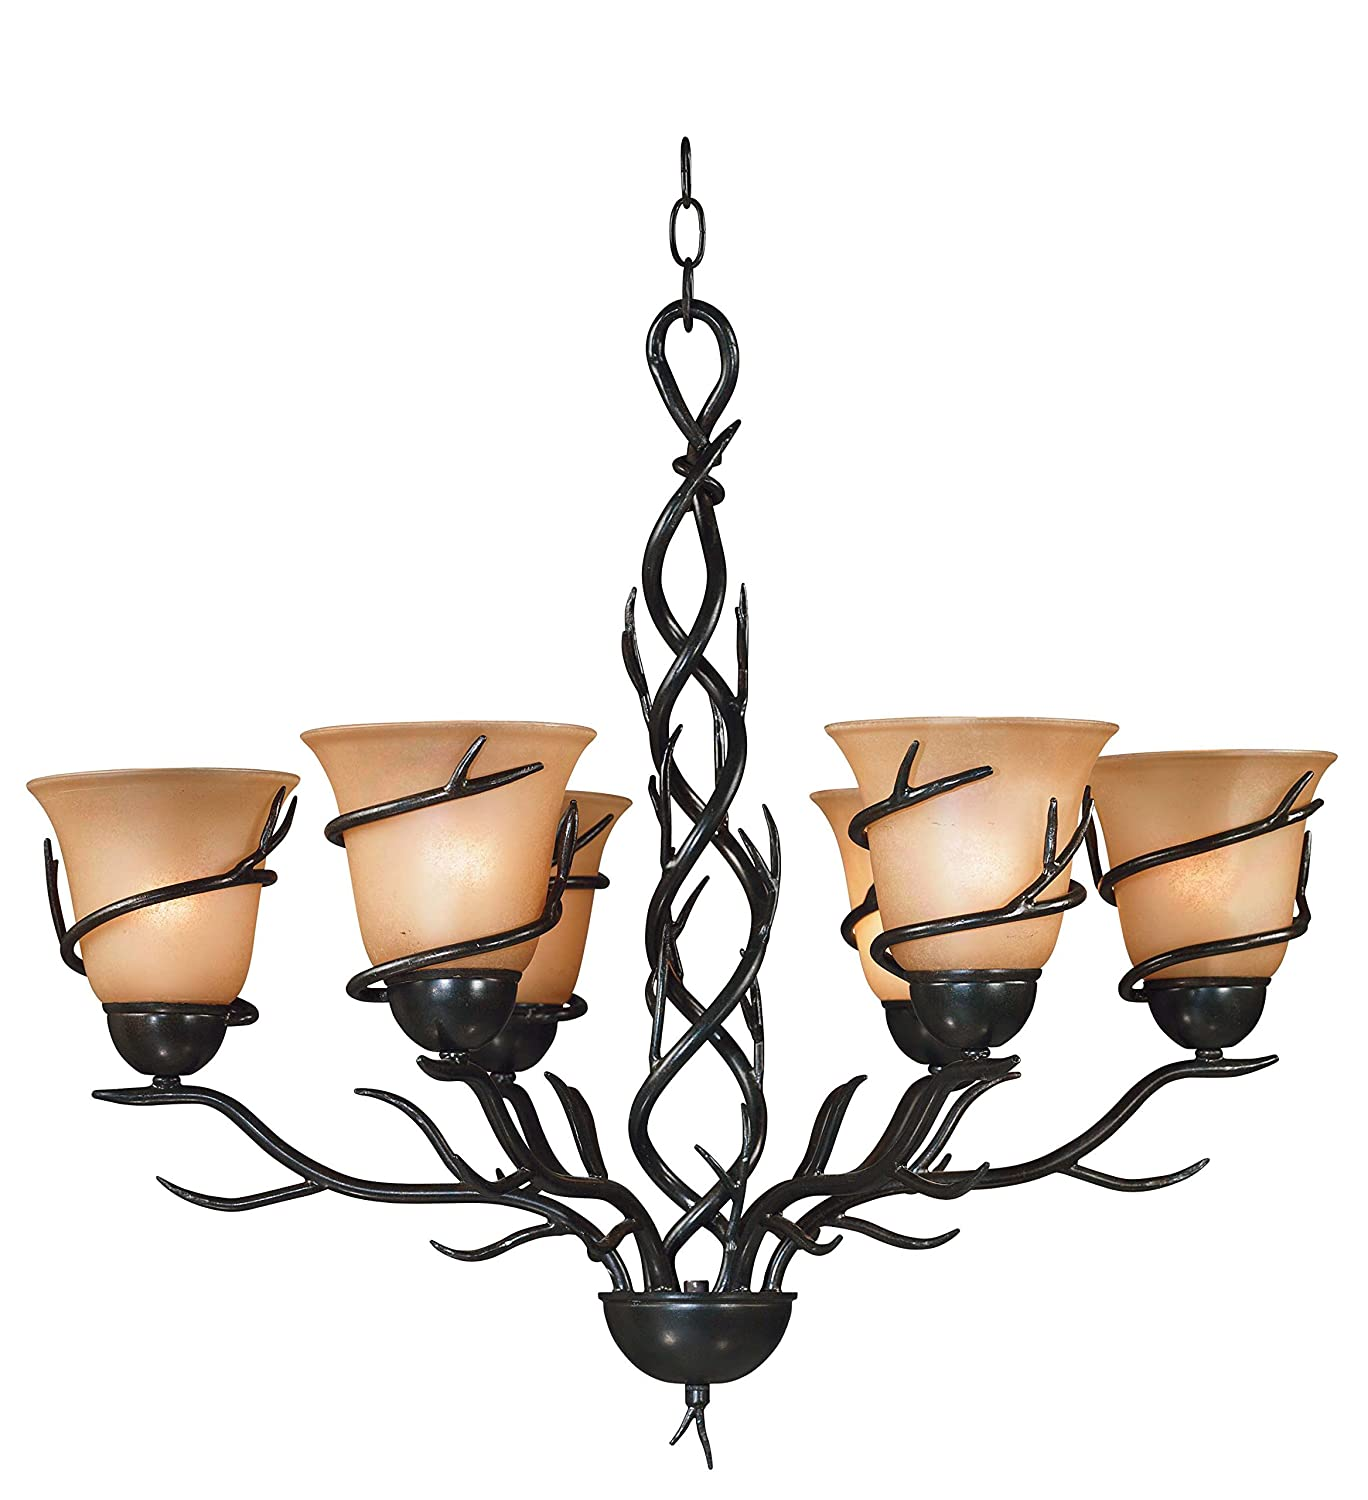 Kenroy home 90900brz twigs 6 light chandelier blackened bronze kenroy home 90900brz twigs 6 light chandelier blackened bronze finish amazon arubaitofo Image collections